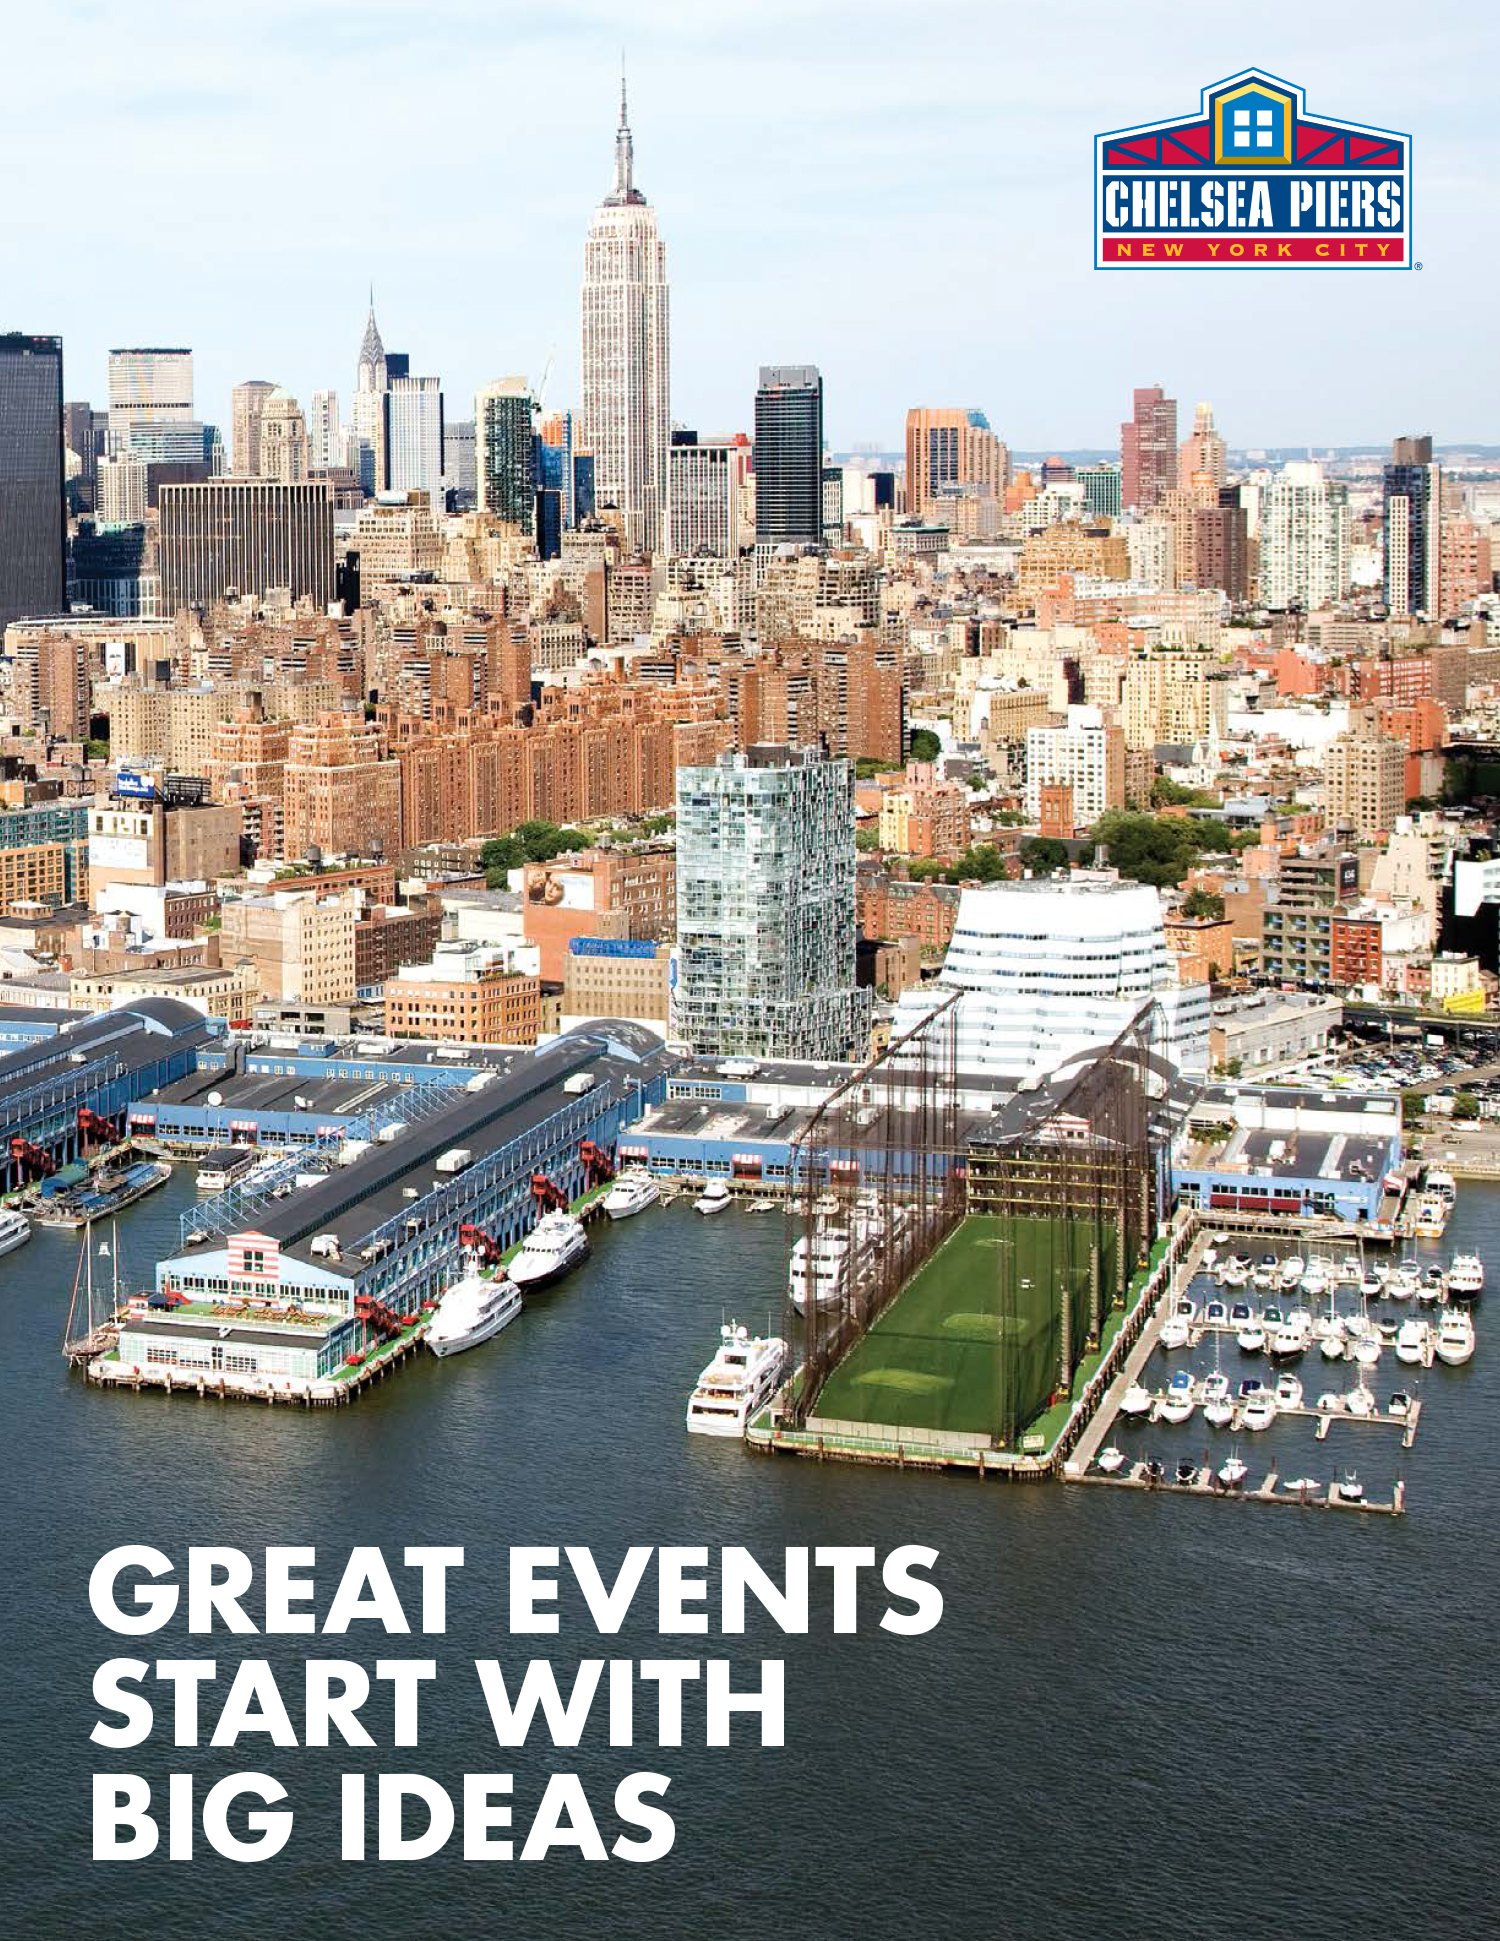 Big event ideas start here chelsea piers chelsea piers for Events going on in new york city